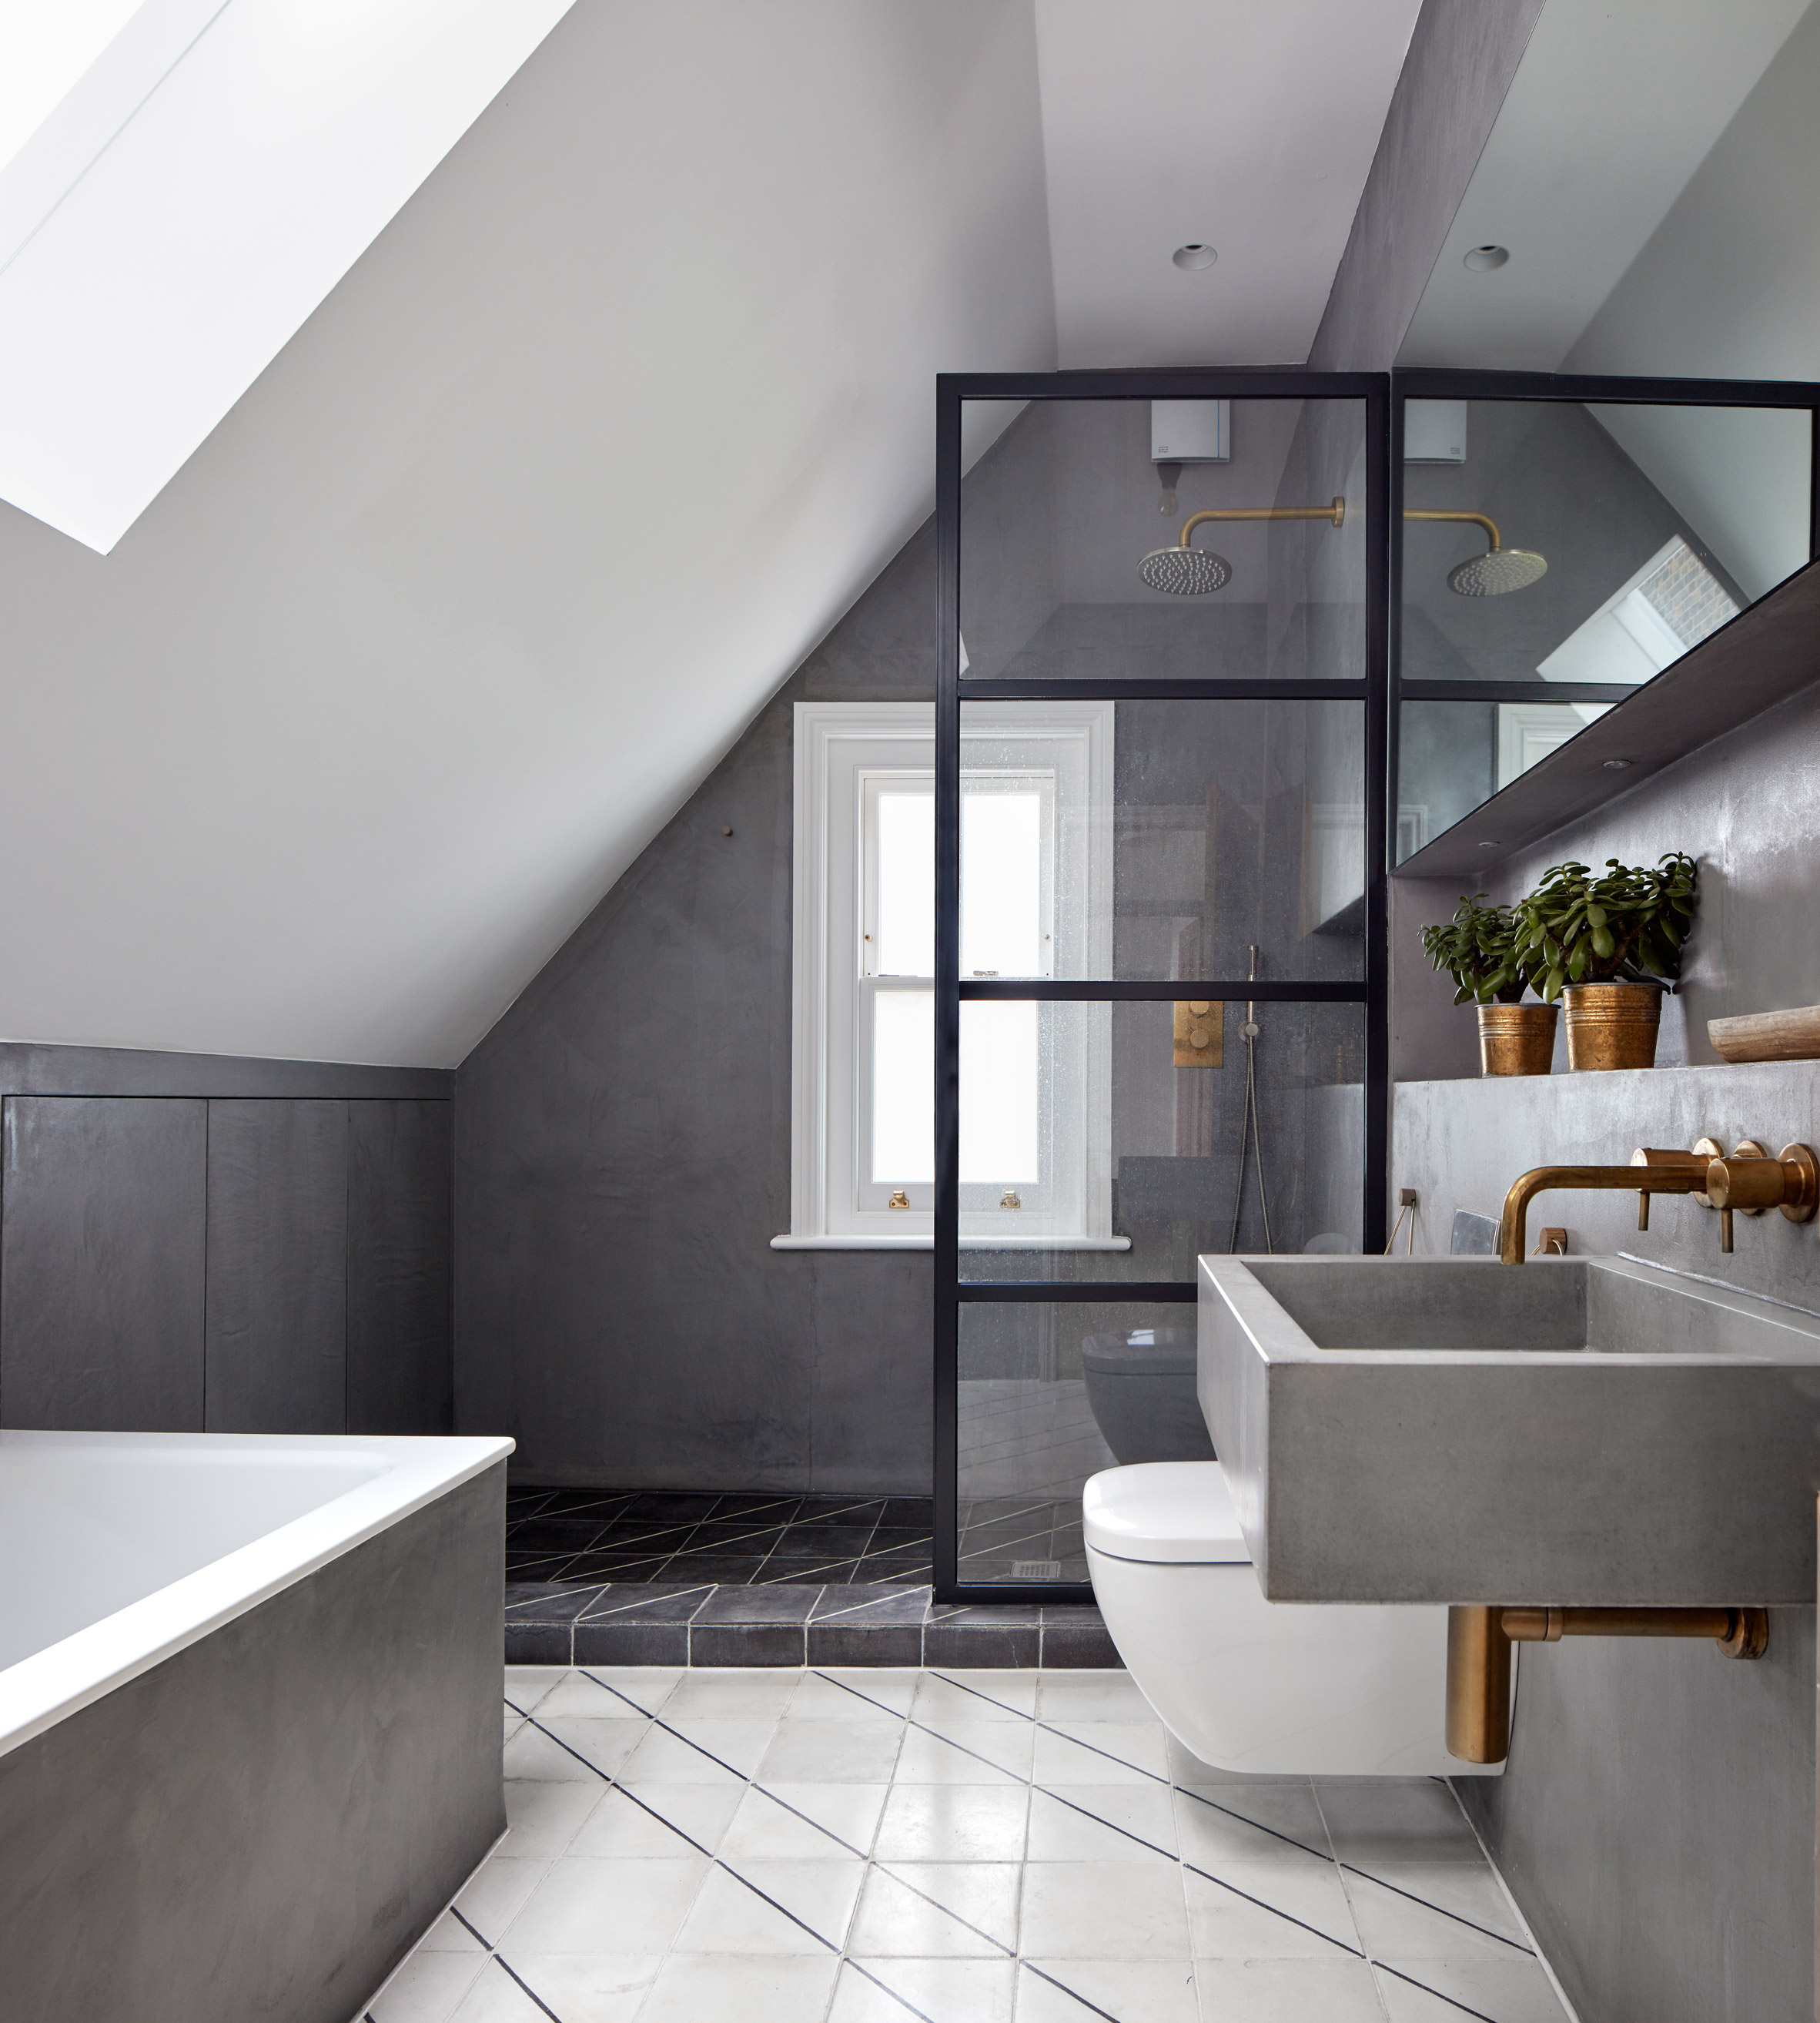 Merrett Houmøller Architects has renovated and extended a townhouse in north London